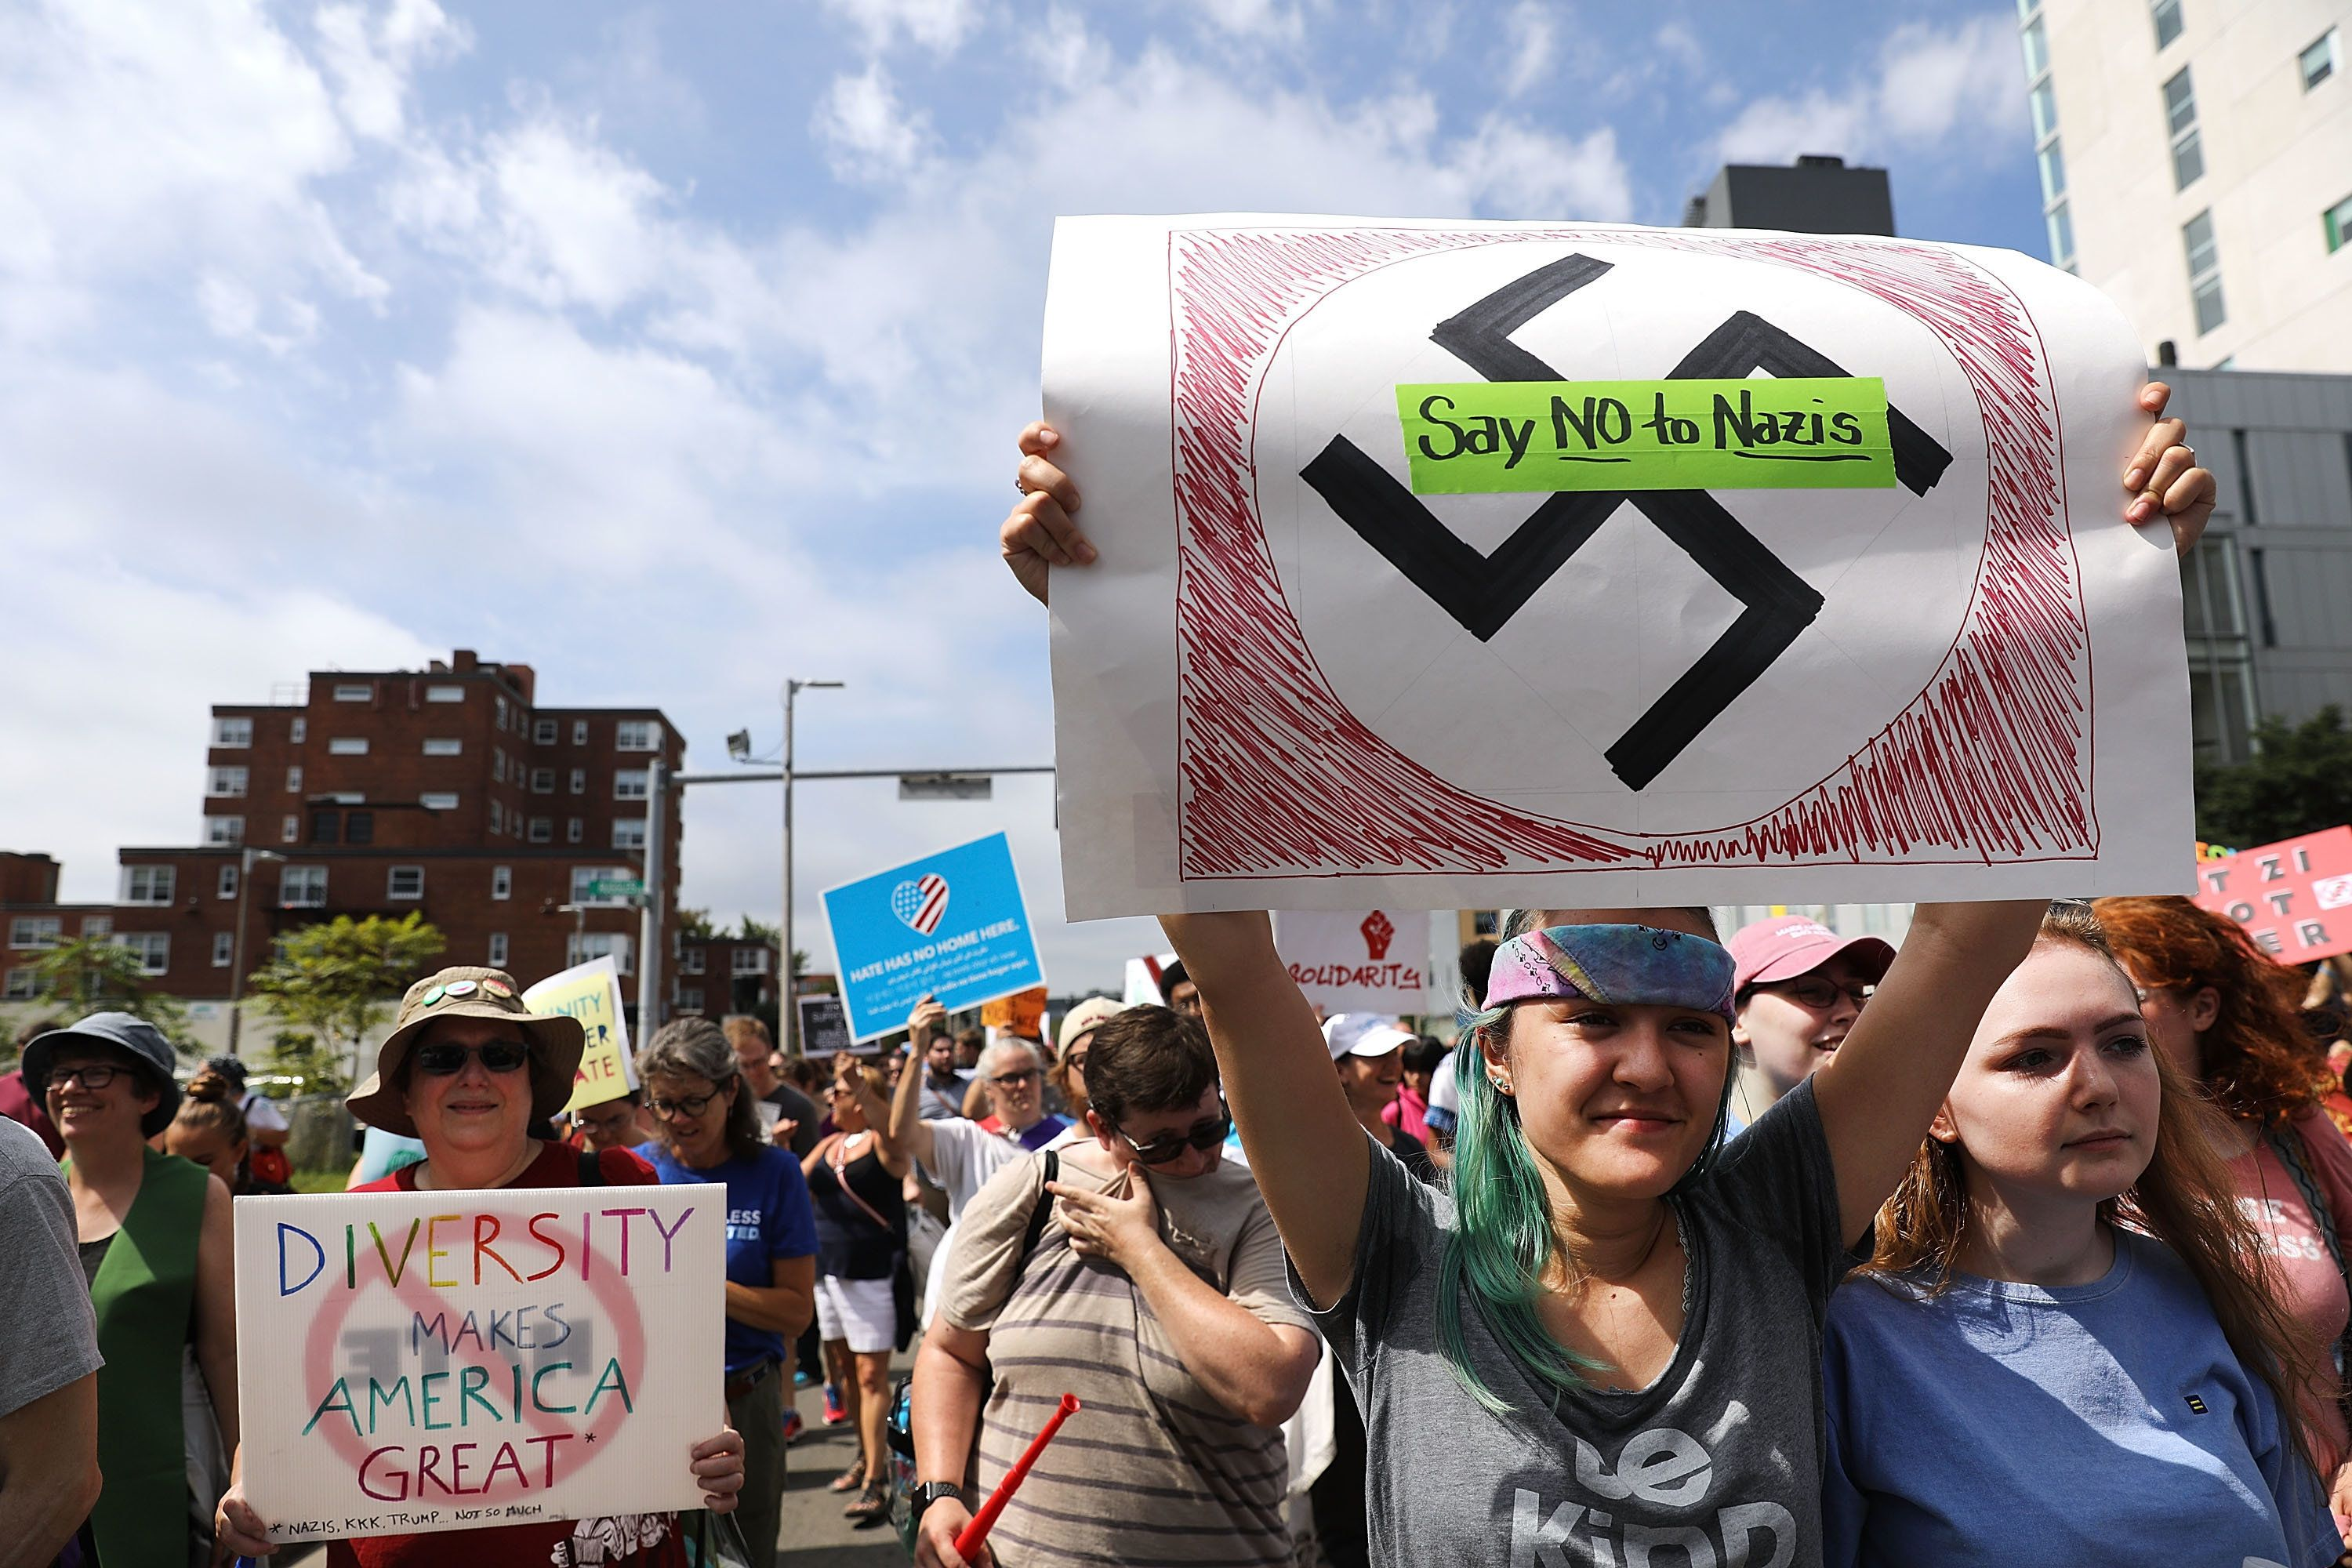 BOSTON, MA - AUGUST 19:  Thousands of protesters march in Boston against a planned 'Free Speech Rally' just one week after the violent 'Unite the Right' rally in Virginia left one woman dead and dozens more injured on August 19, 2017 in Boston, United States. Although the rally organizers stress that they are not associated with any alt-right or white supremacist groups, the city of Boston and Police Commissioner William Evans are preparing for possible confrontations at the afternoon rally.  (Photo by Spencer Platt/Getty Images)